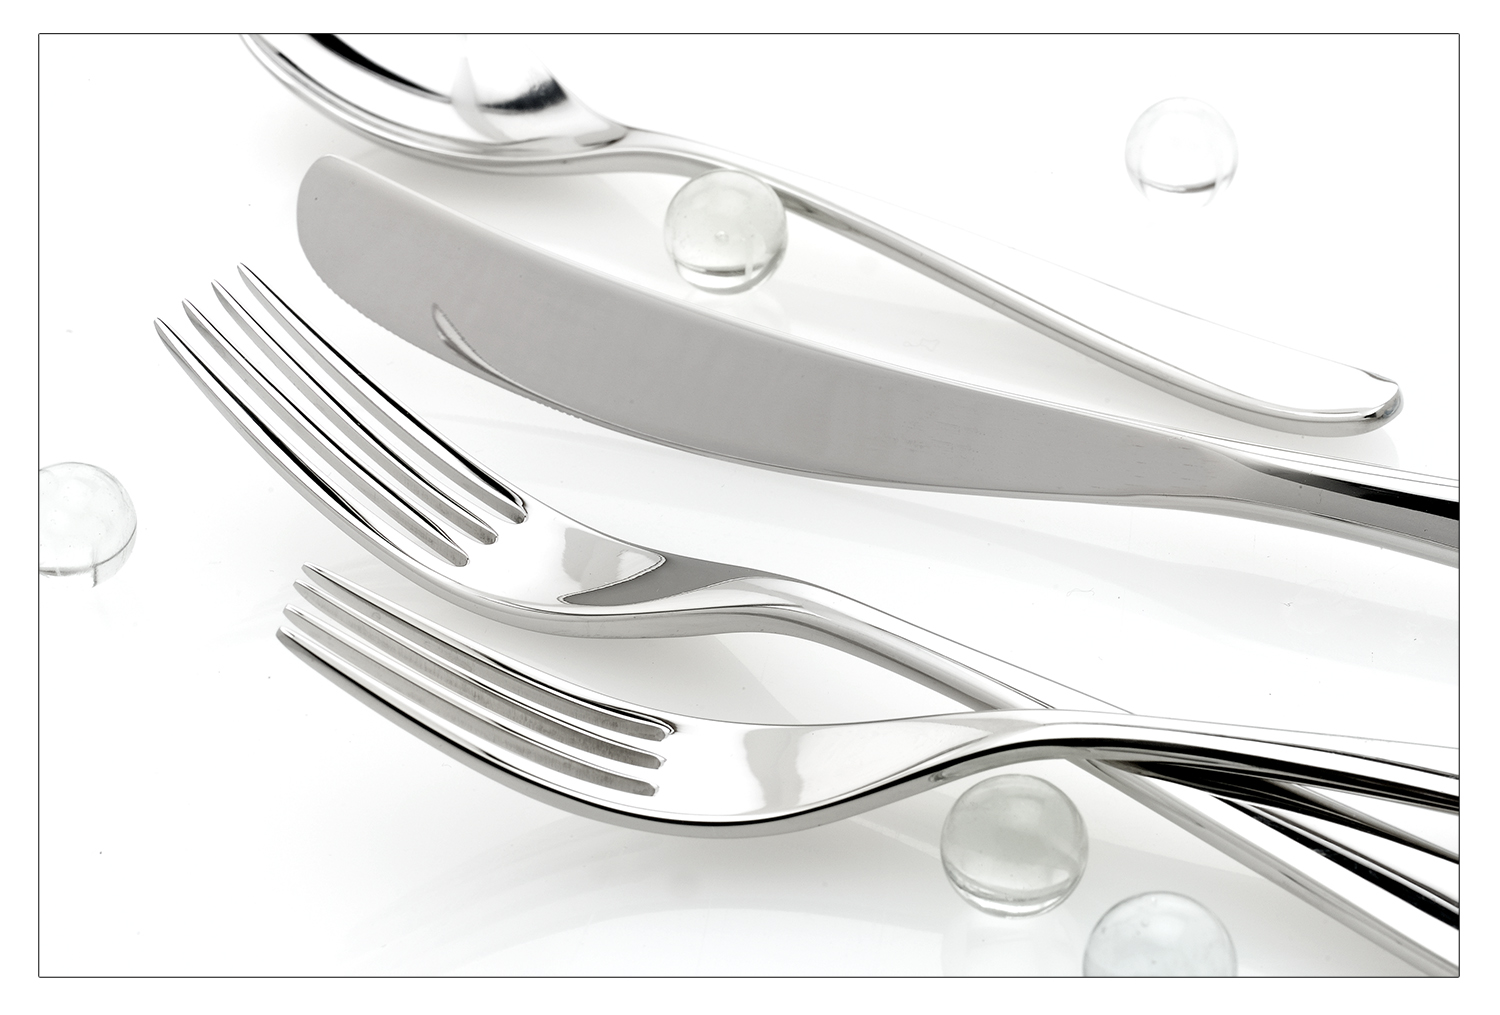 Flatware on white with clear glass marbles. Product Photo.